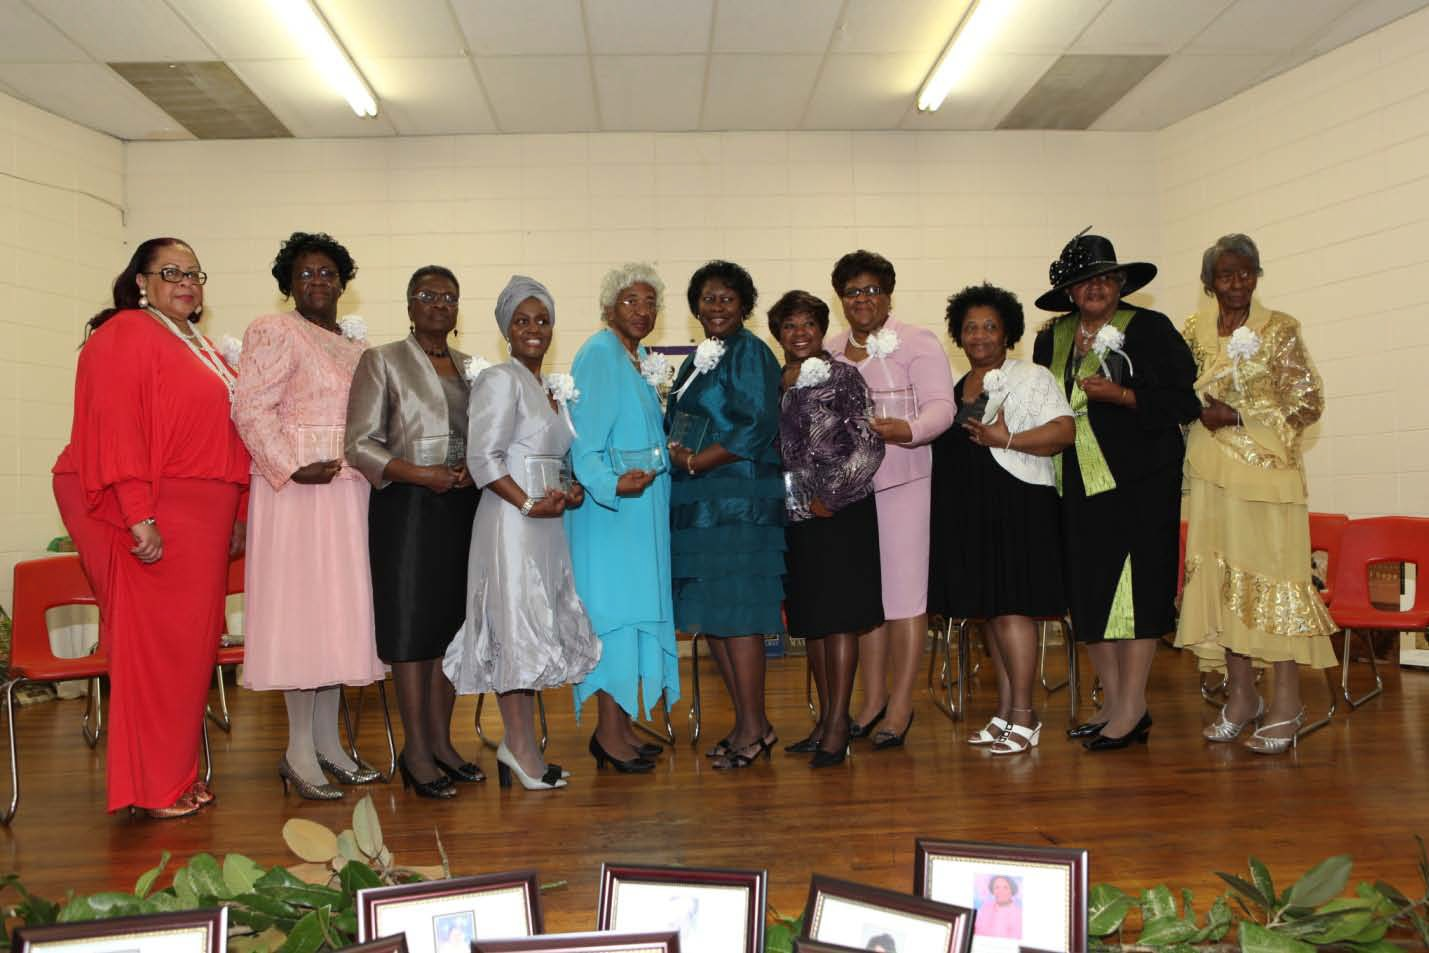 Honorees for 2013: Left to Rights: Dr. Linda I. Walden, Ann Flowers, Emorial Mitchell, Beverly Reynolds, Pearline Thompson, Delores Hugan, Josephine Mullins, Sabrina Boykins-Everett, Charlotte Johnson, Mae France Hayes & Hazel Nixon Beard.